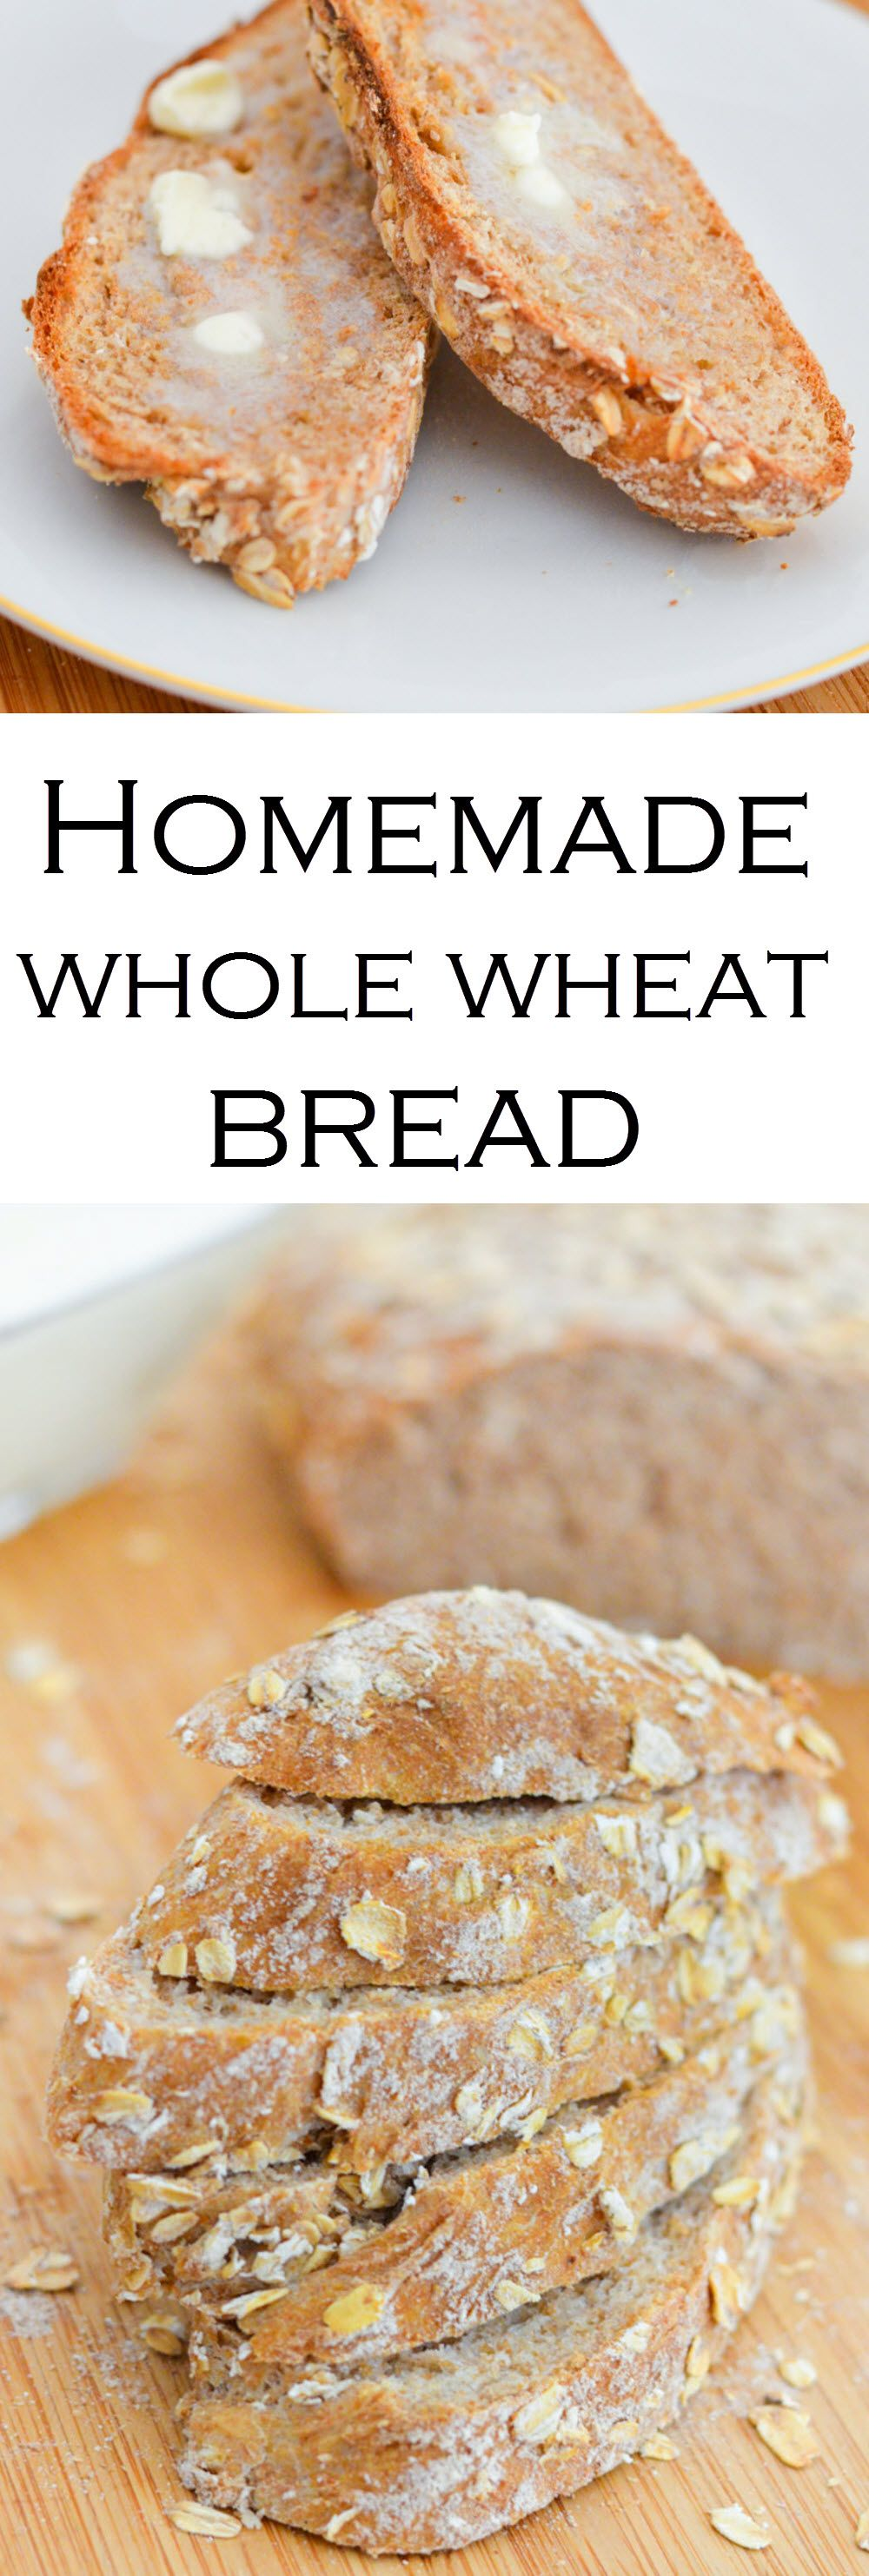 Enjoy the simple things with homemade whole wheat bread and homemade butter. With just a few ingredients, you'll have fresh bread + butter in no time!